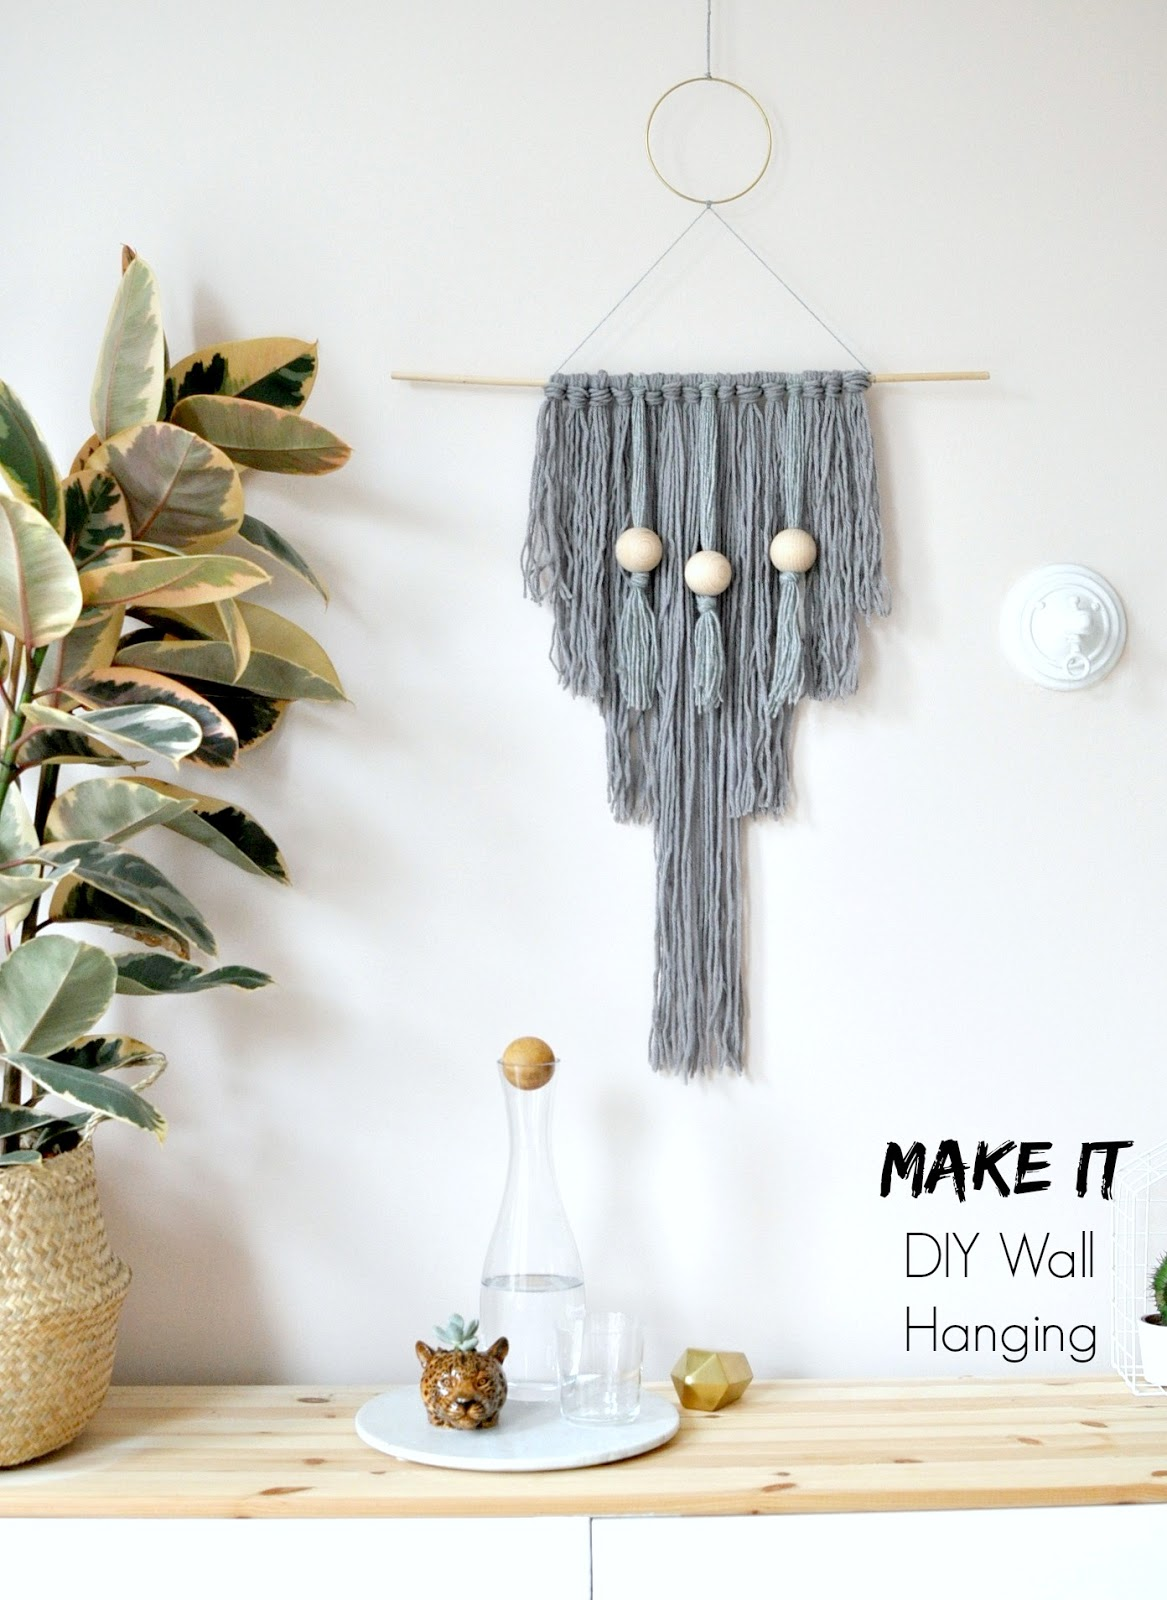 DIY room decor, diy wall art, diy wall hanging, make you own, diy art, yarn wall hanging, spare room, spare room decor